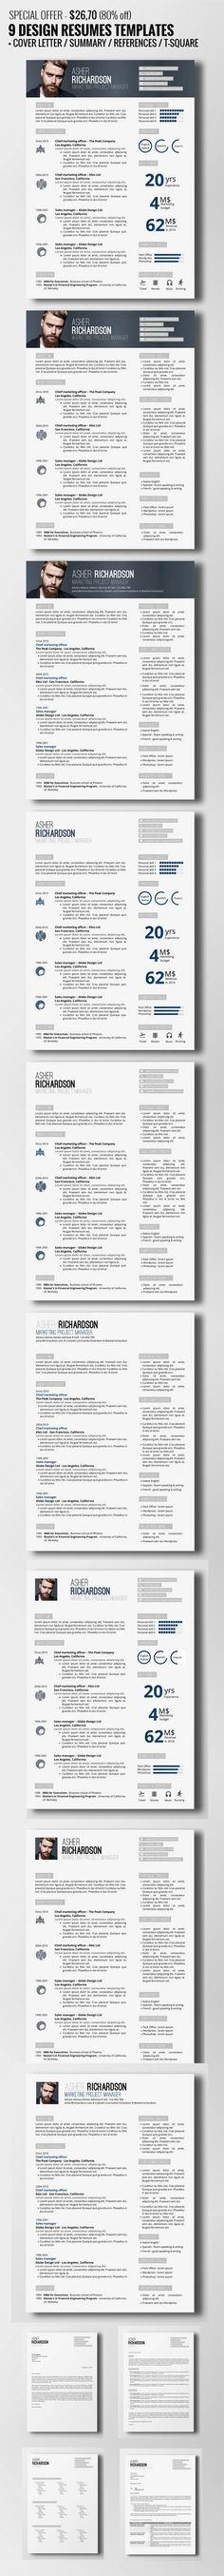 435 best Resume images on Pinterest Resume design, Design resume - awesome resumes templates